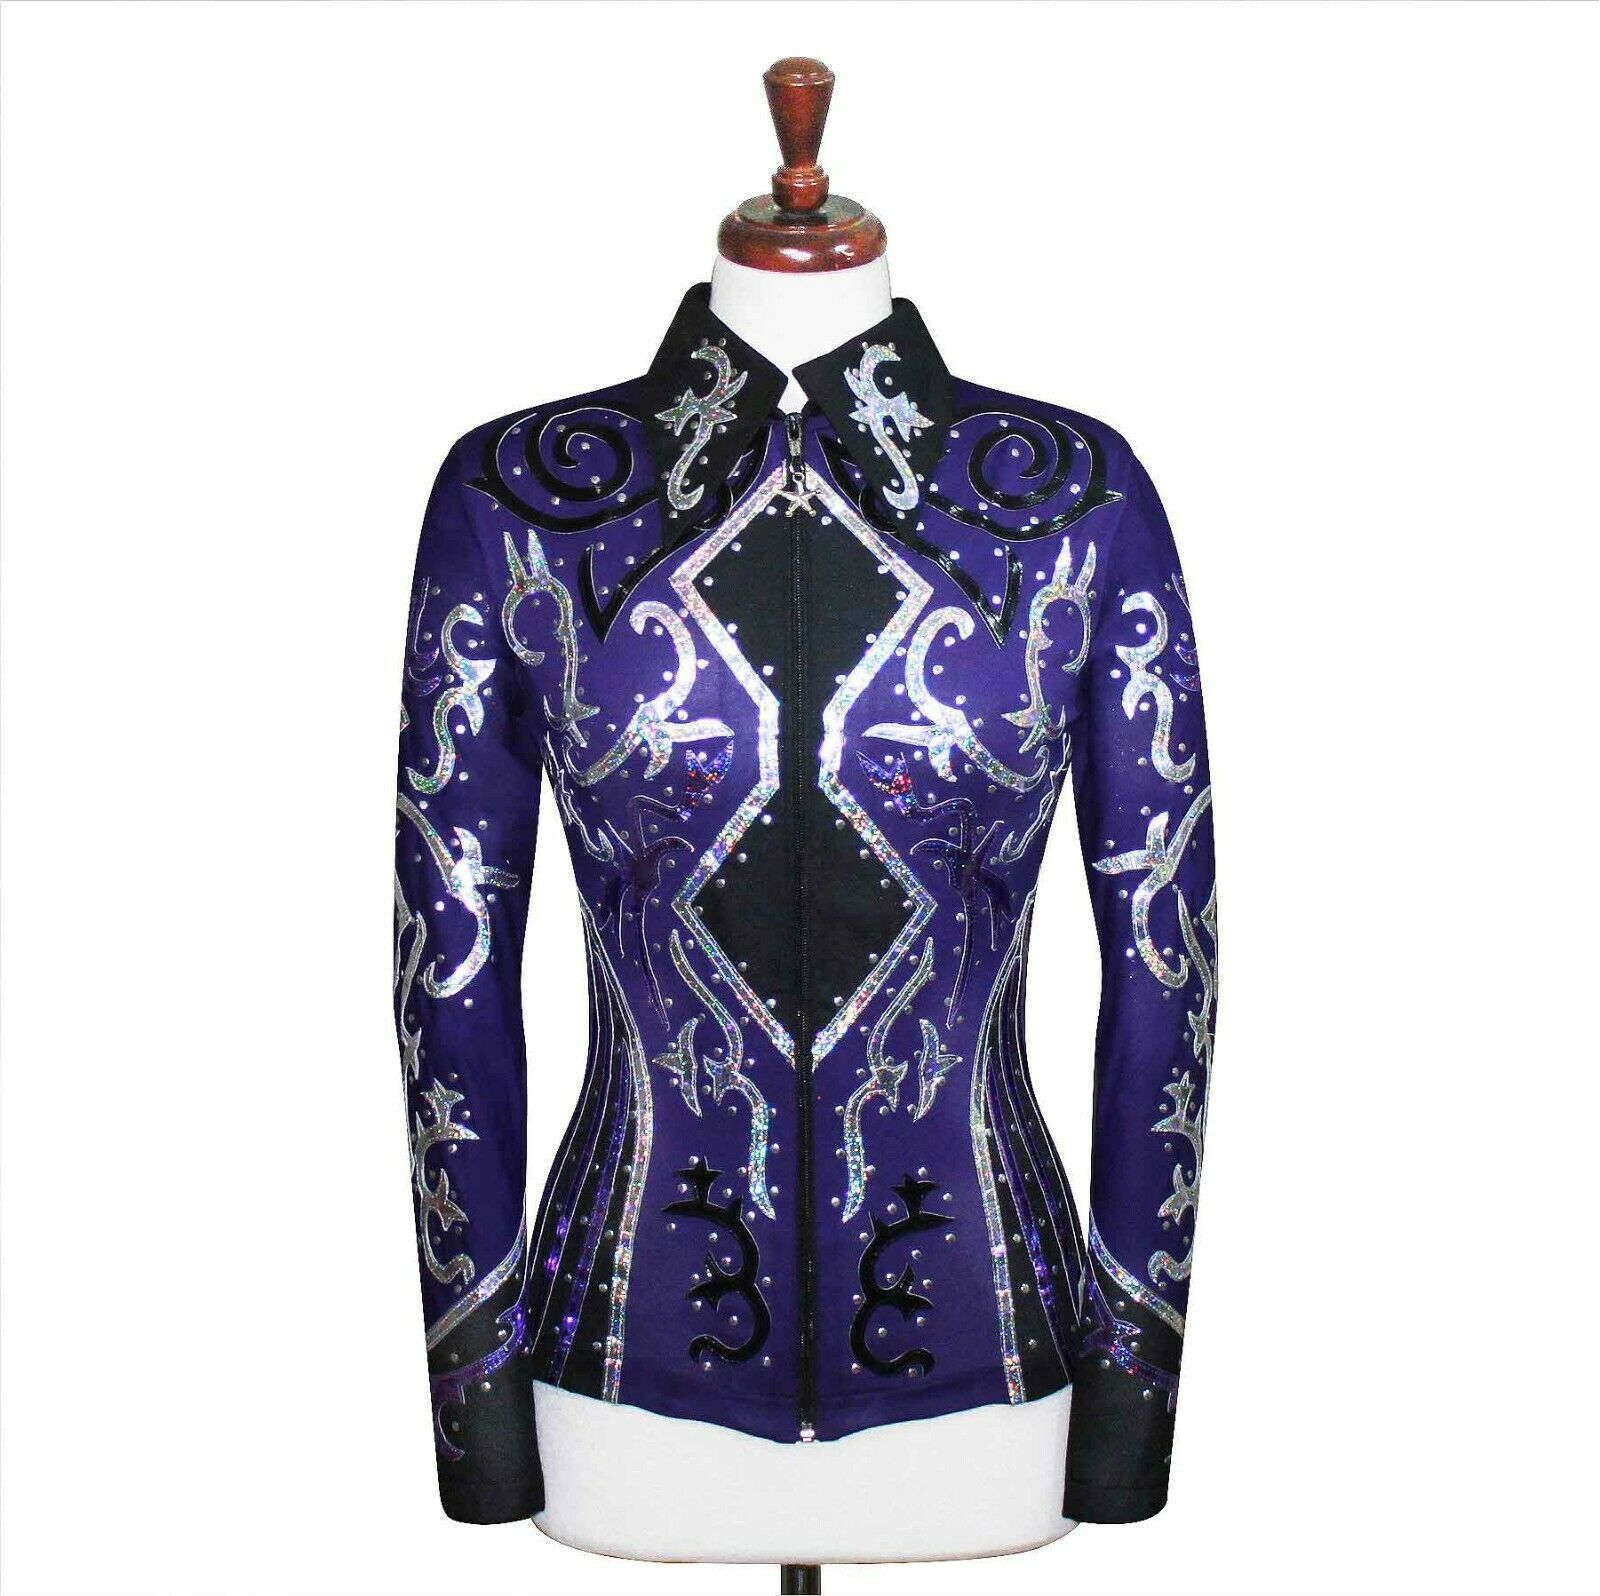 4X-Grand Spectacle plaisir Horsehomengrenerip Show Veste Chemise Rodeo Queen Rail